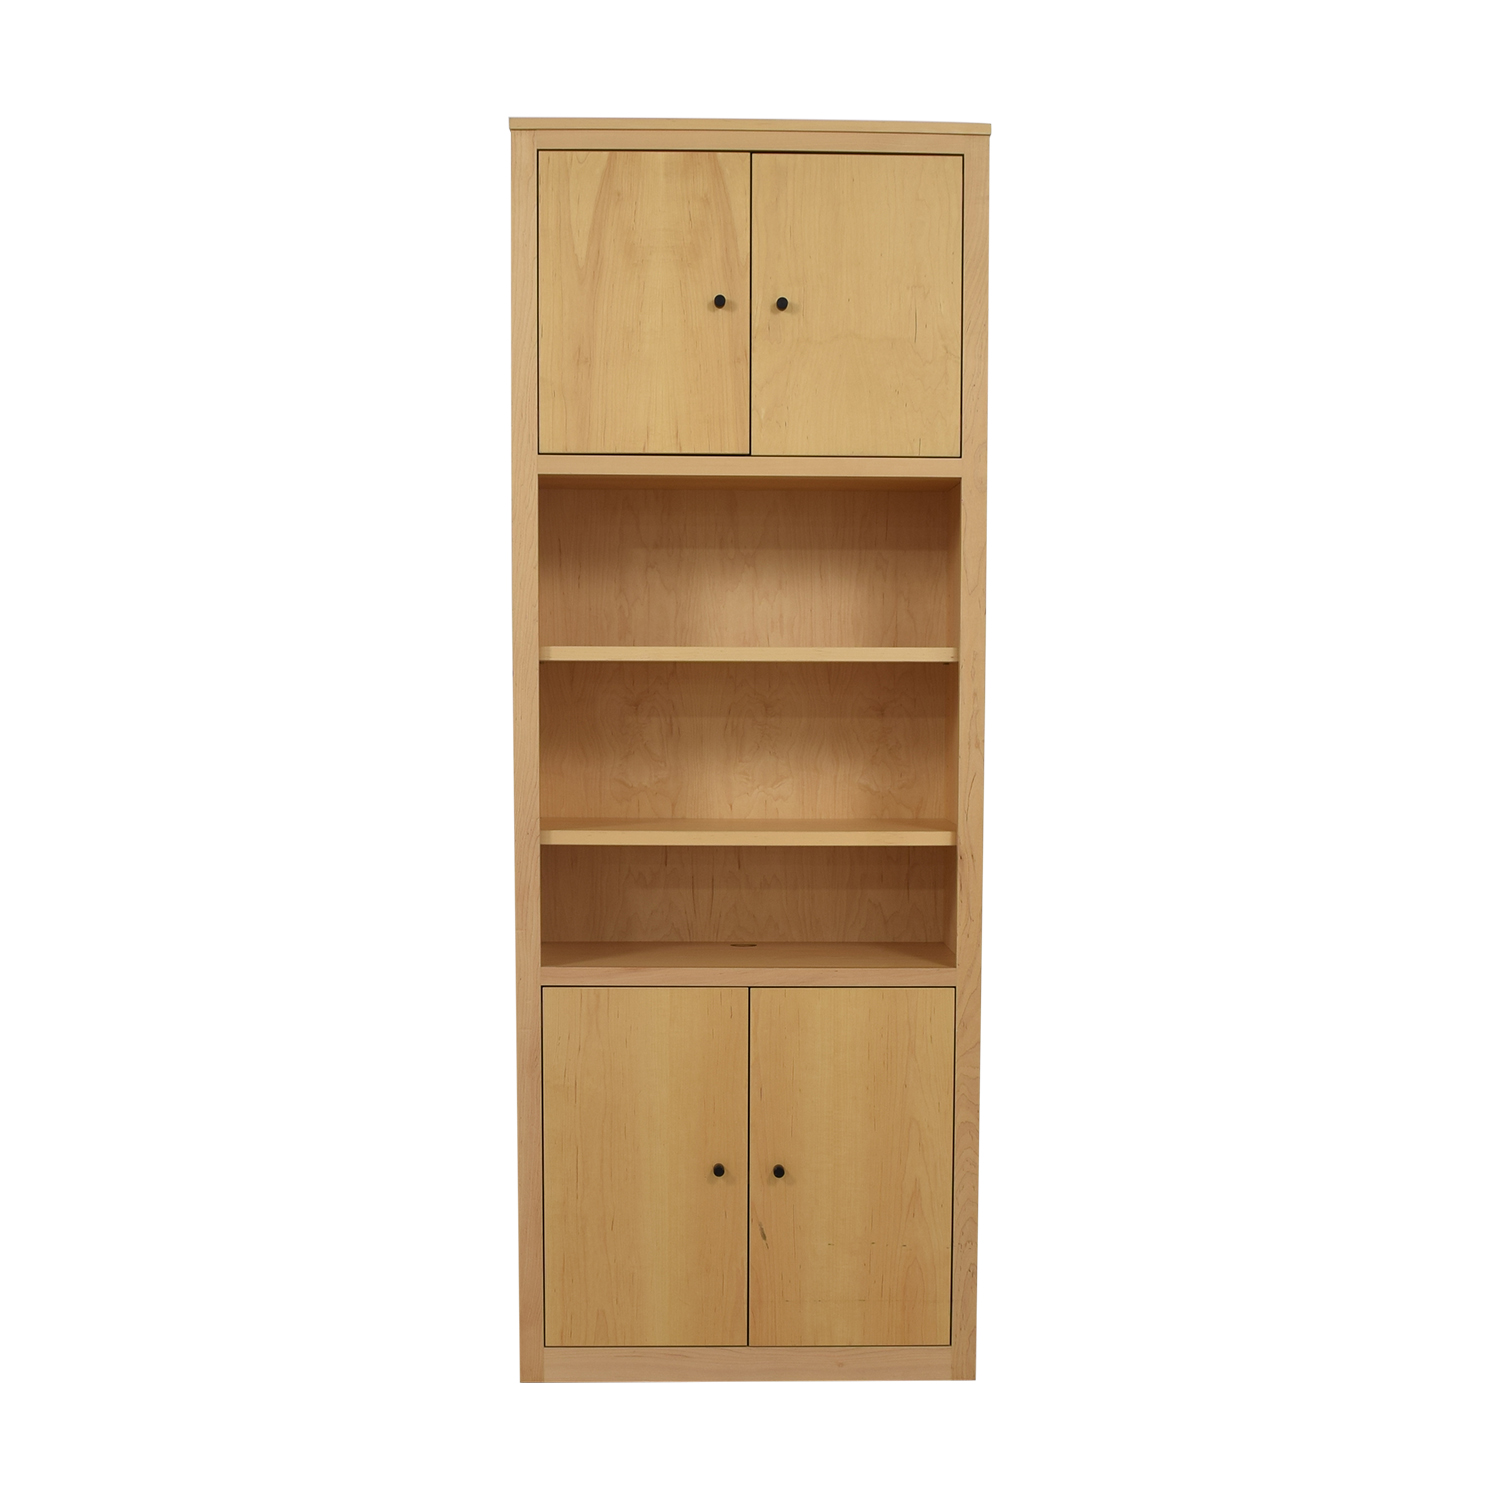 Room & Board Room & Board Woodwind Bookcase with Doors used